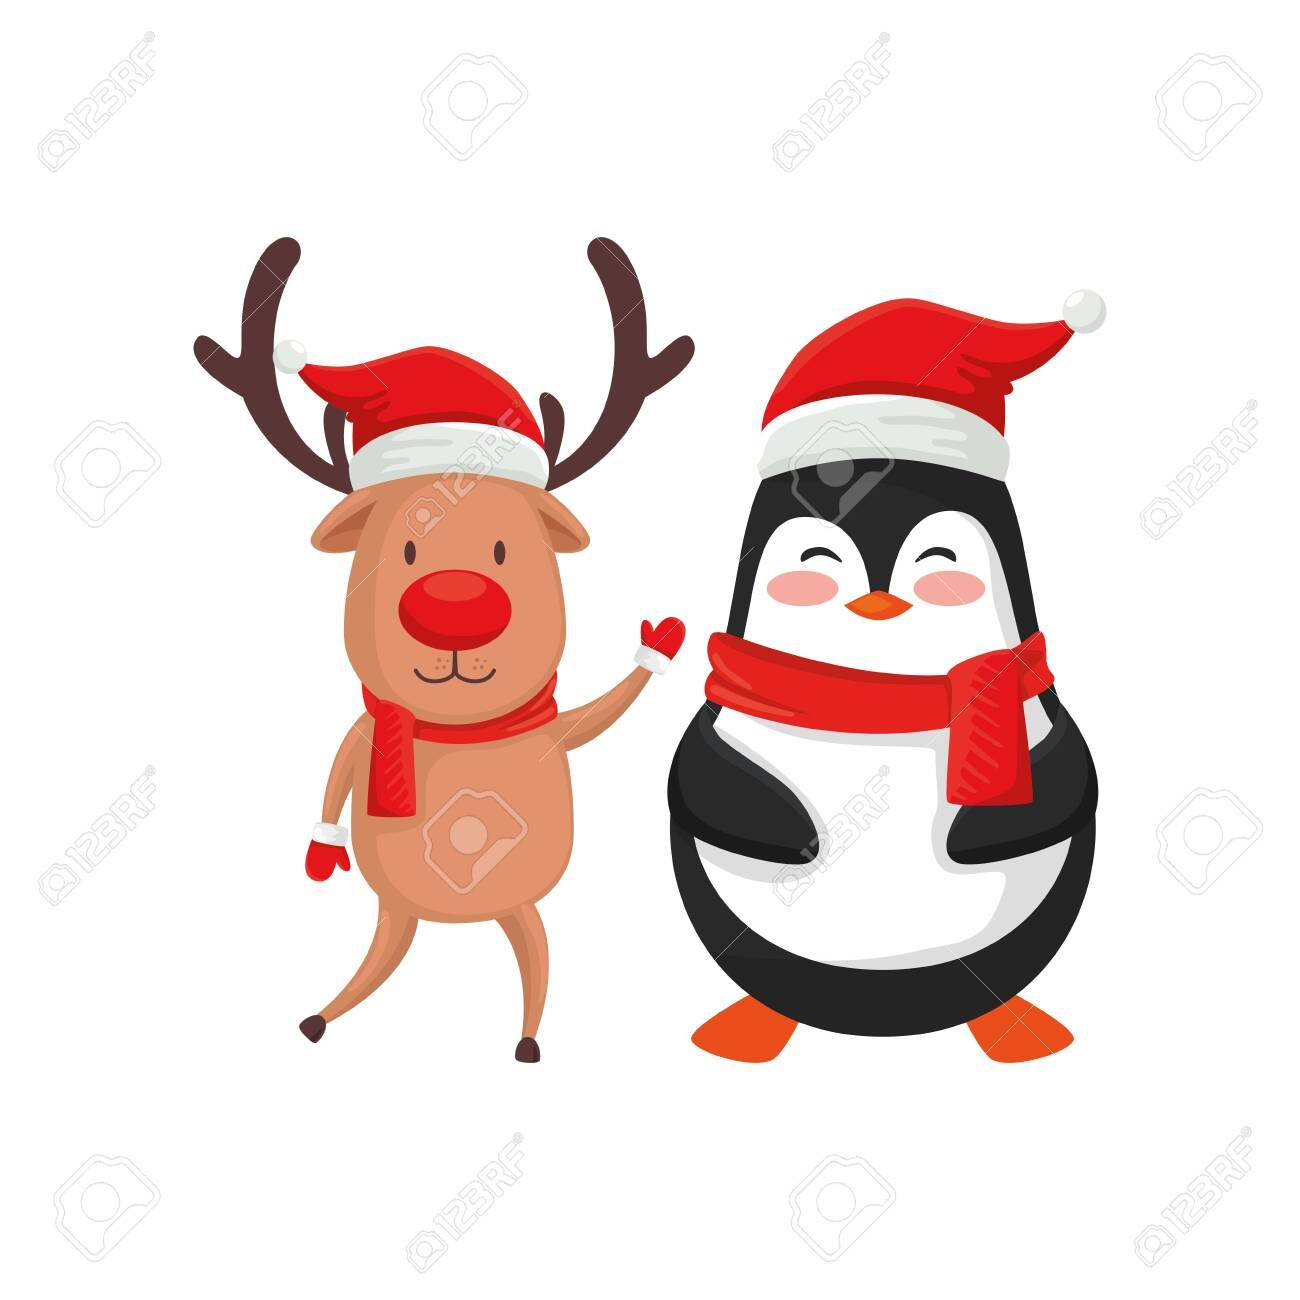 reindeer with penguin characters merry christmas vector illustration design , #sponsored, #characters, #merry, #reindeer, #penguin, #illustration